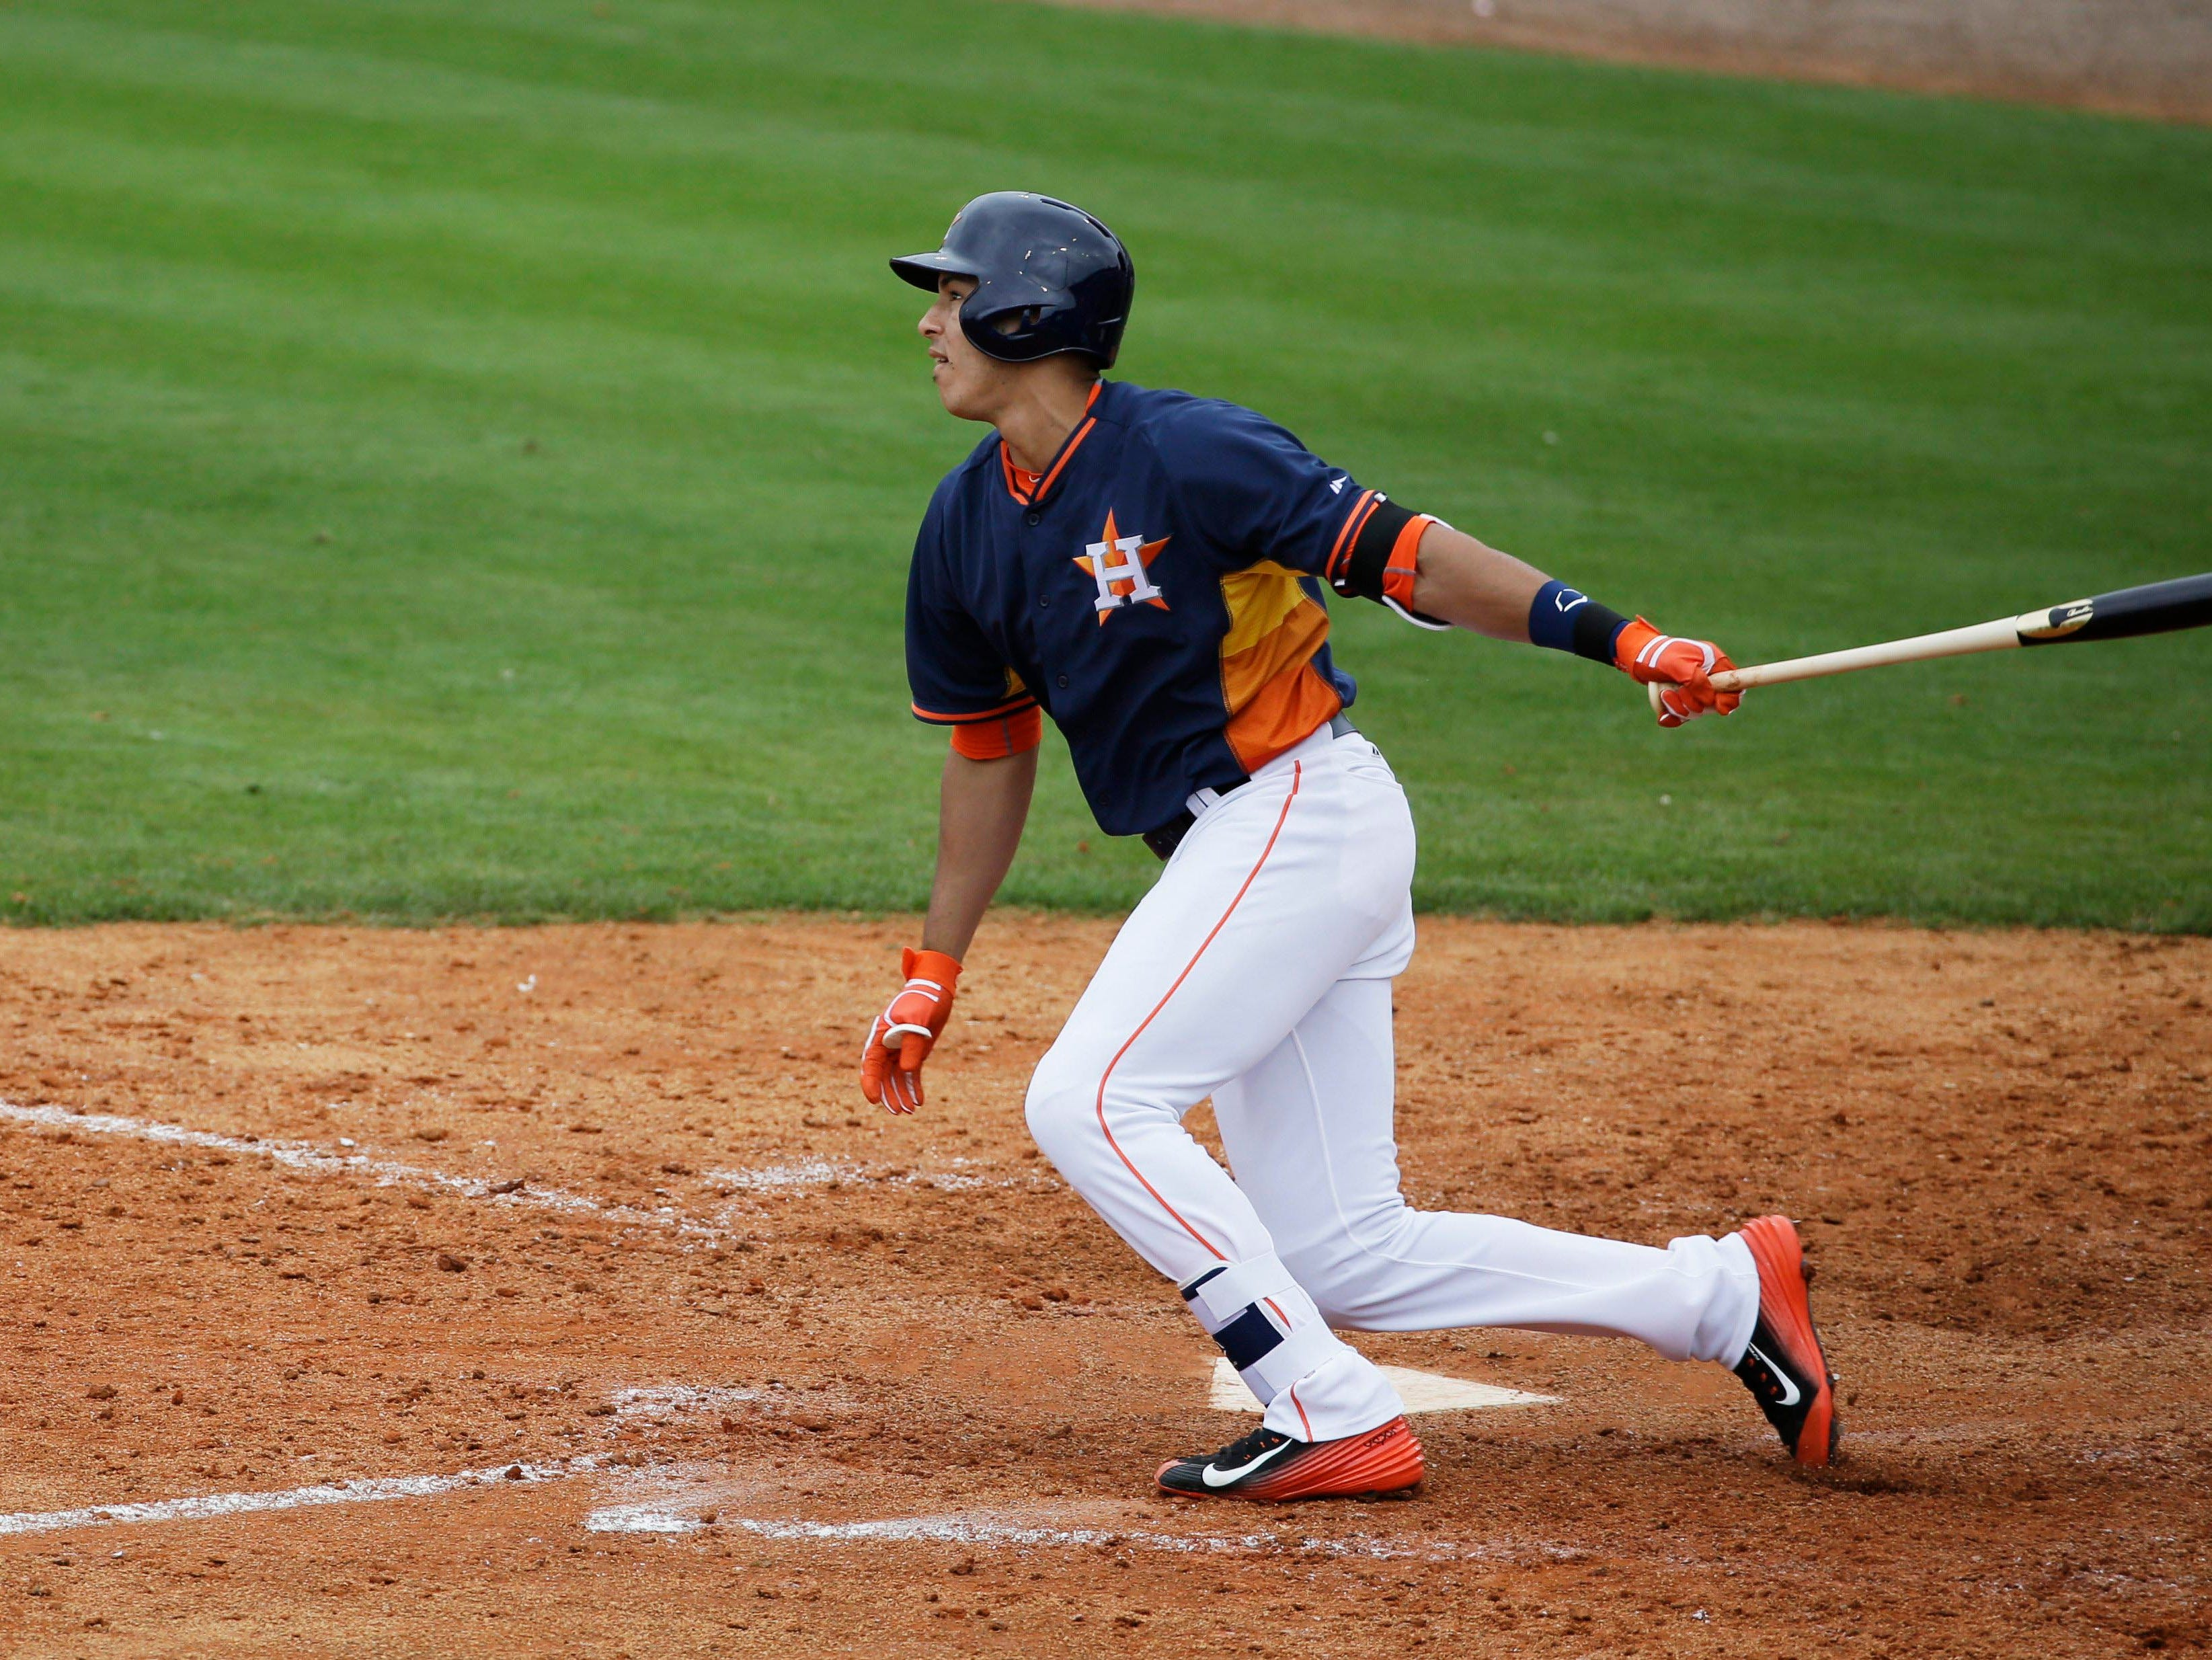 Houston Astros' Carlos Correa plays during an exhibition spring training baseball game against the New York Yankees, Saturday, March 7, 2015, in Kissimmee, Fla. (AP Photo/David Goldman)